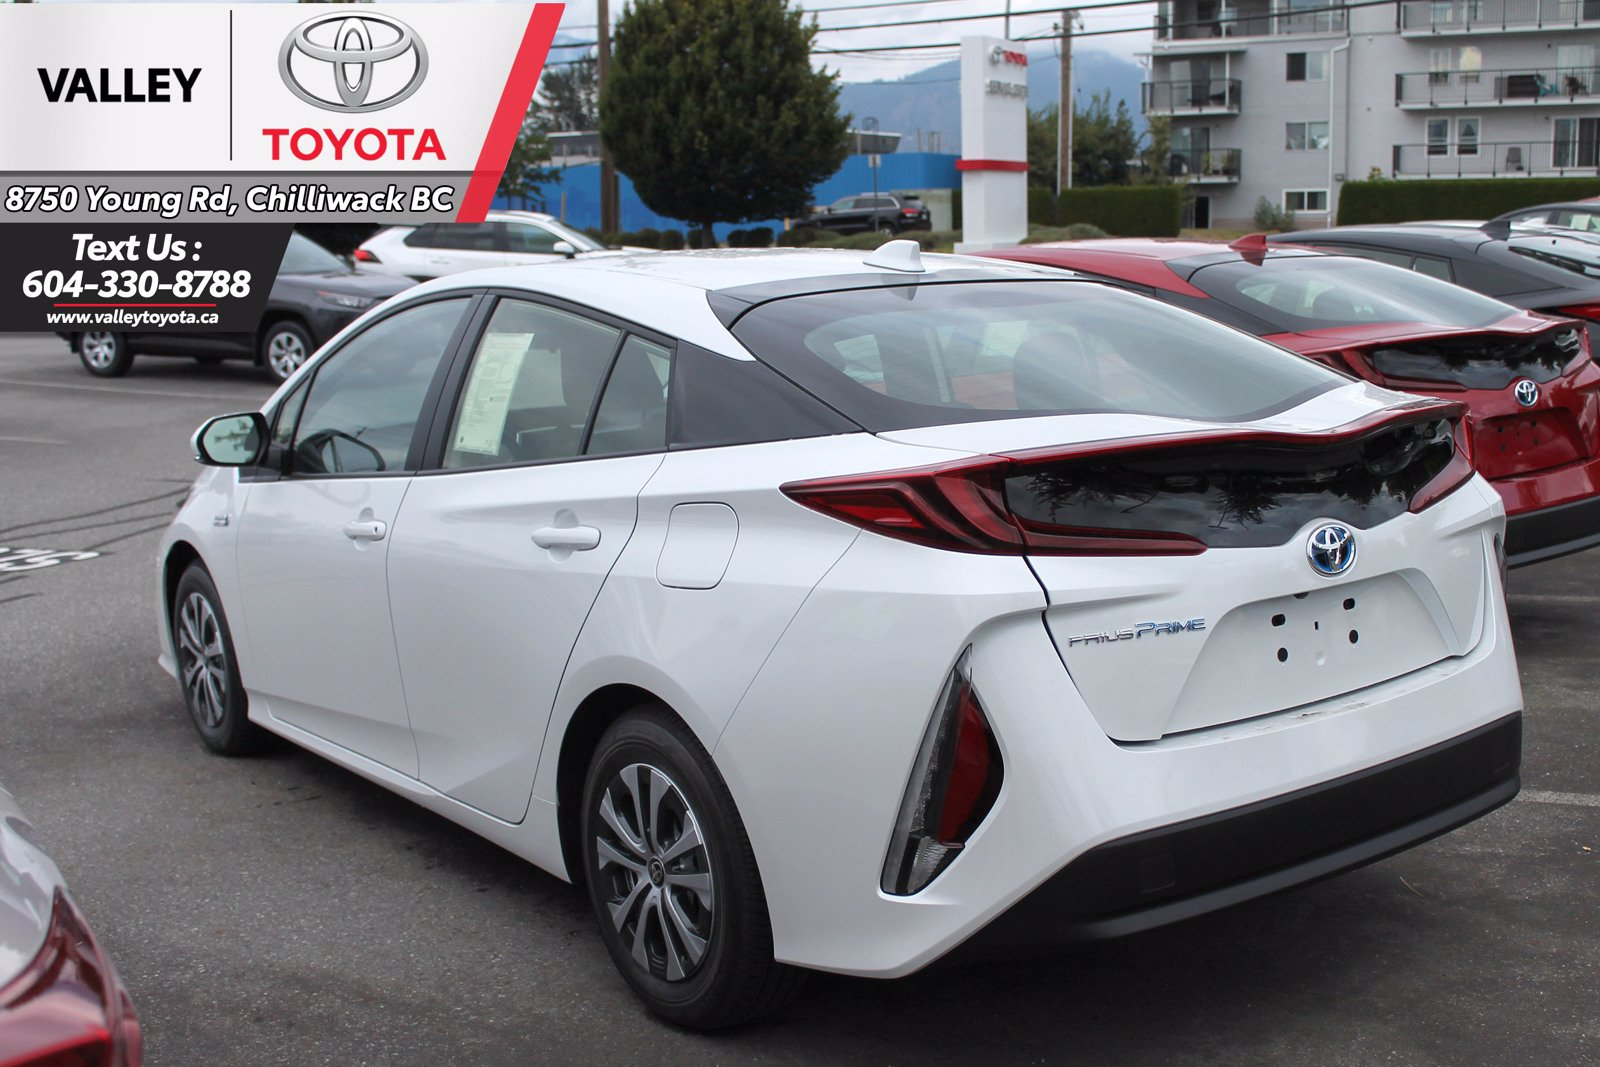 new 2021 toyota prius prime hatchback in chilliwack